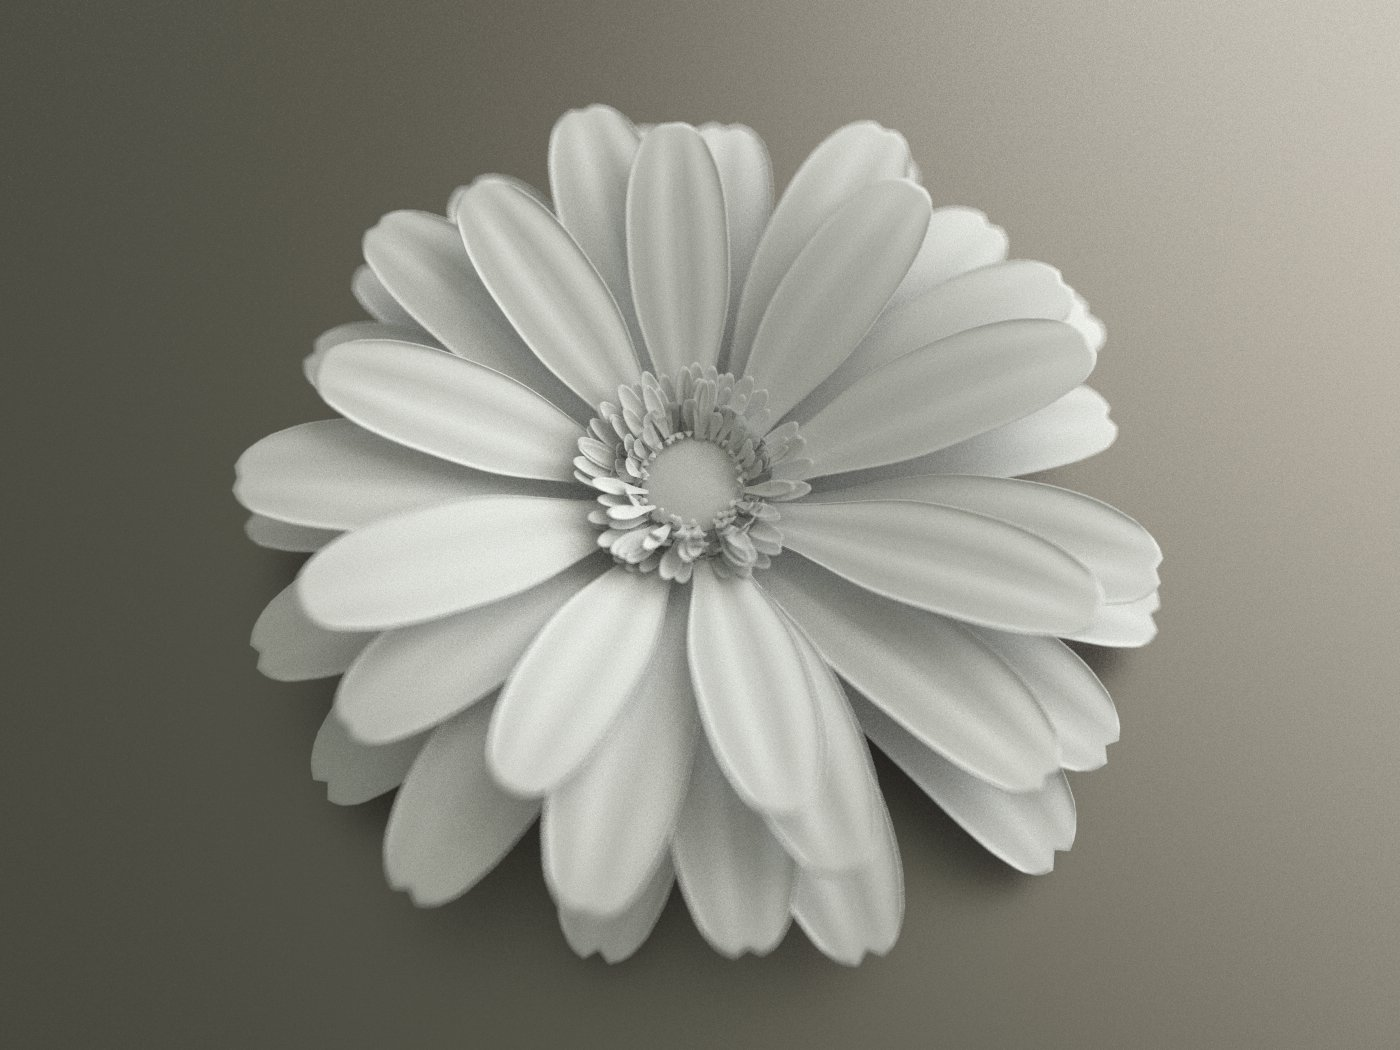 flower-sample-4.jpg